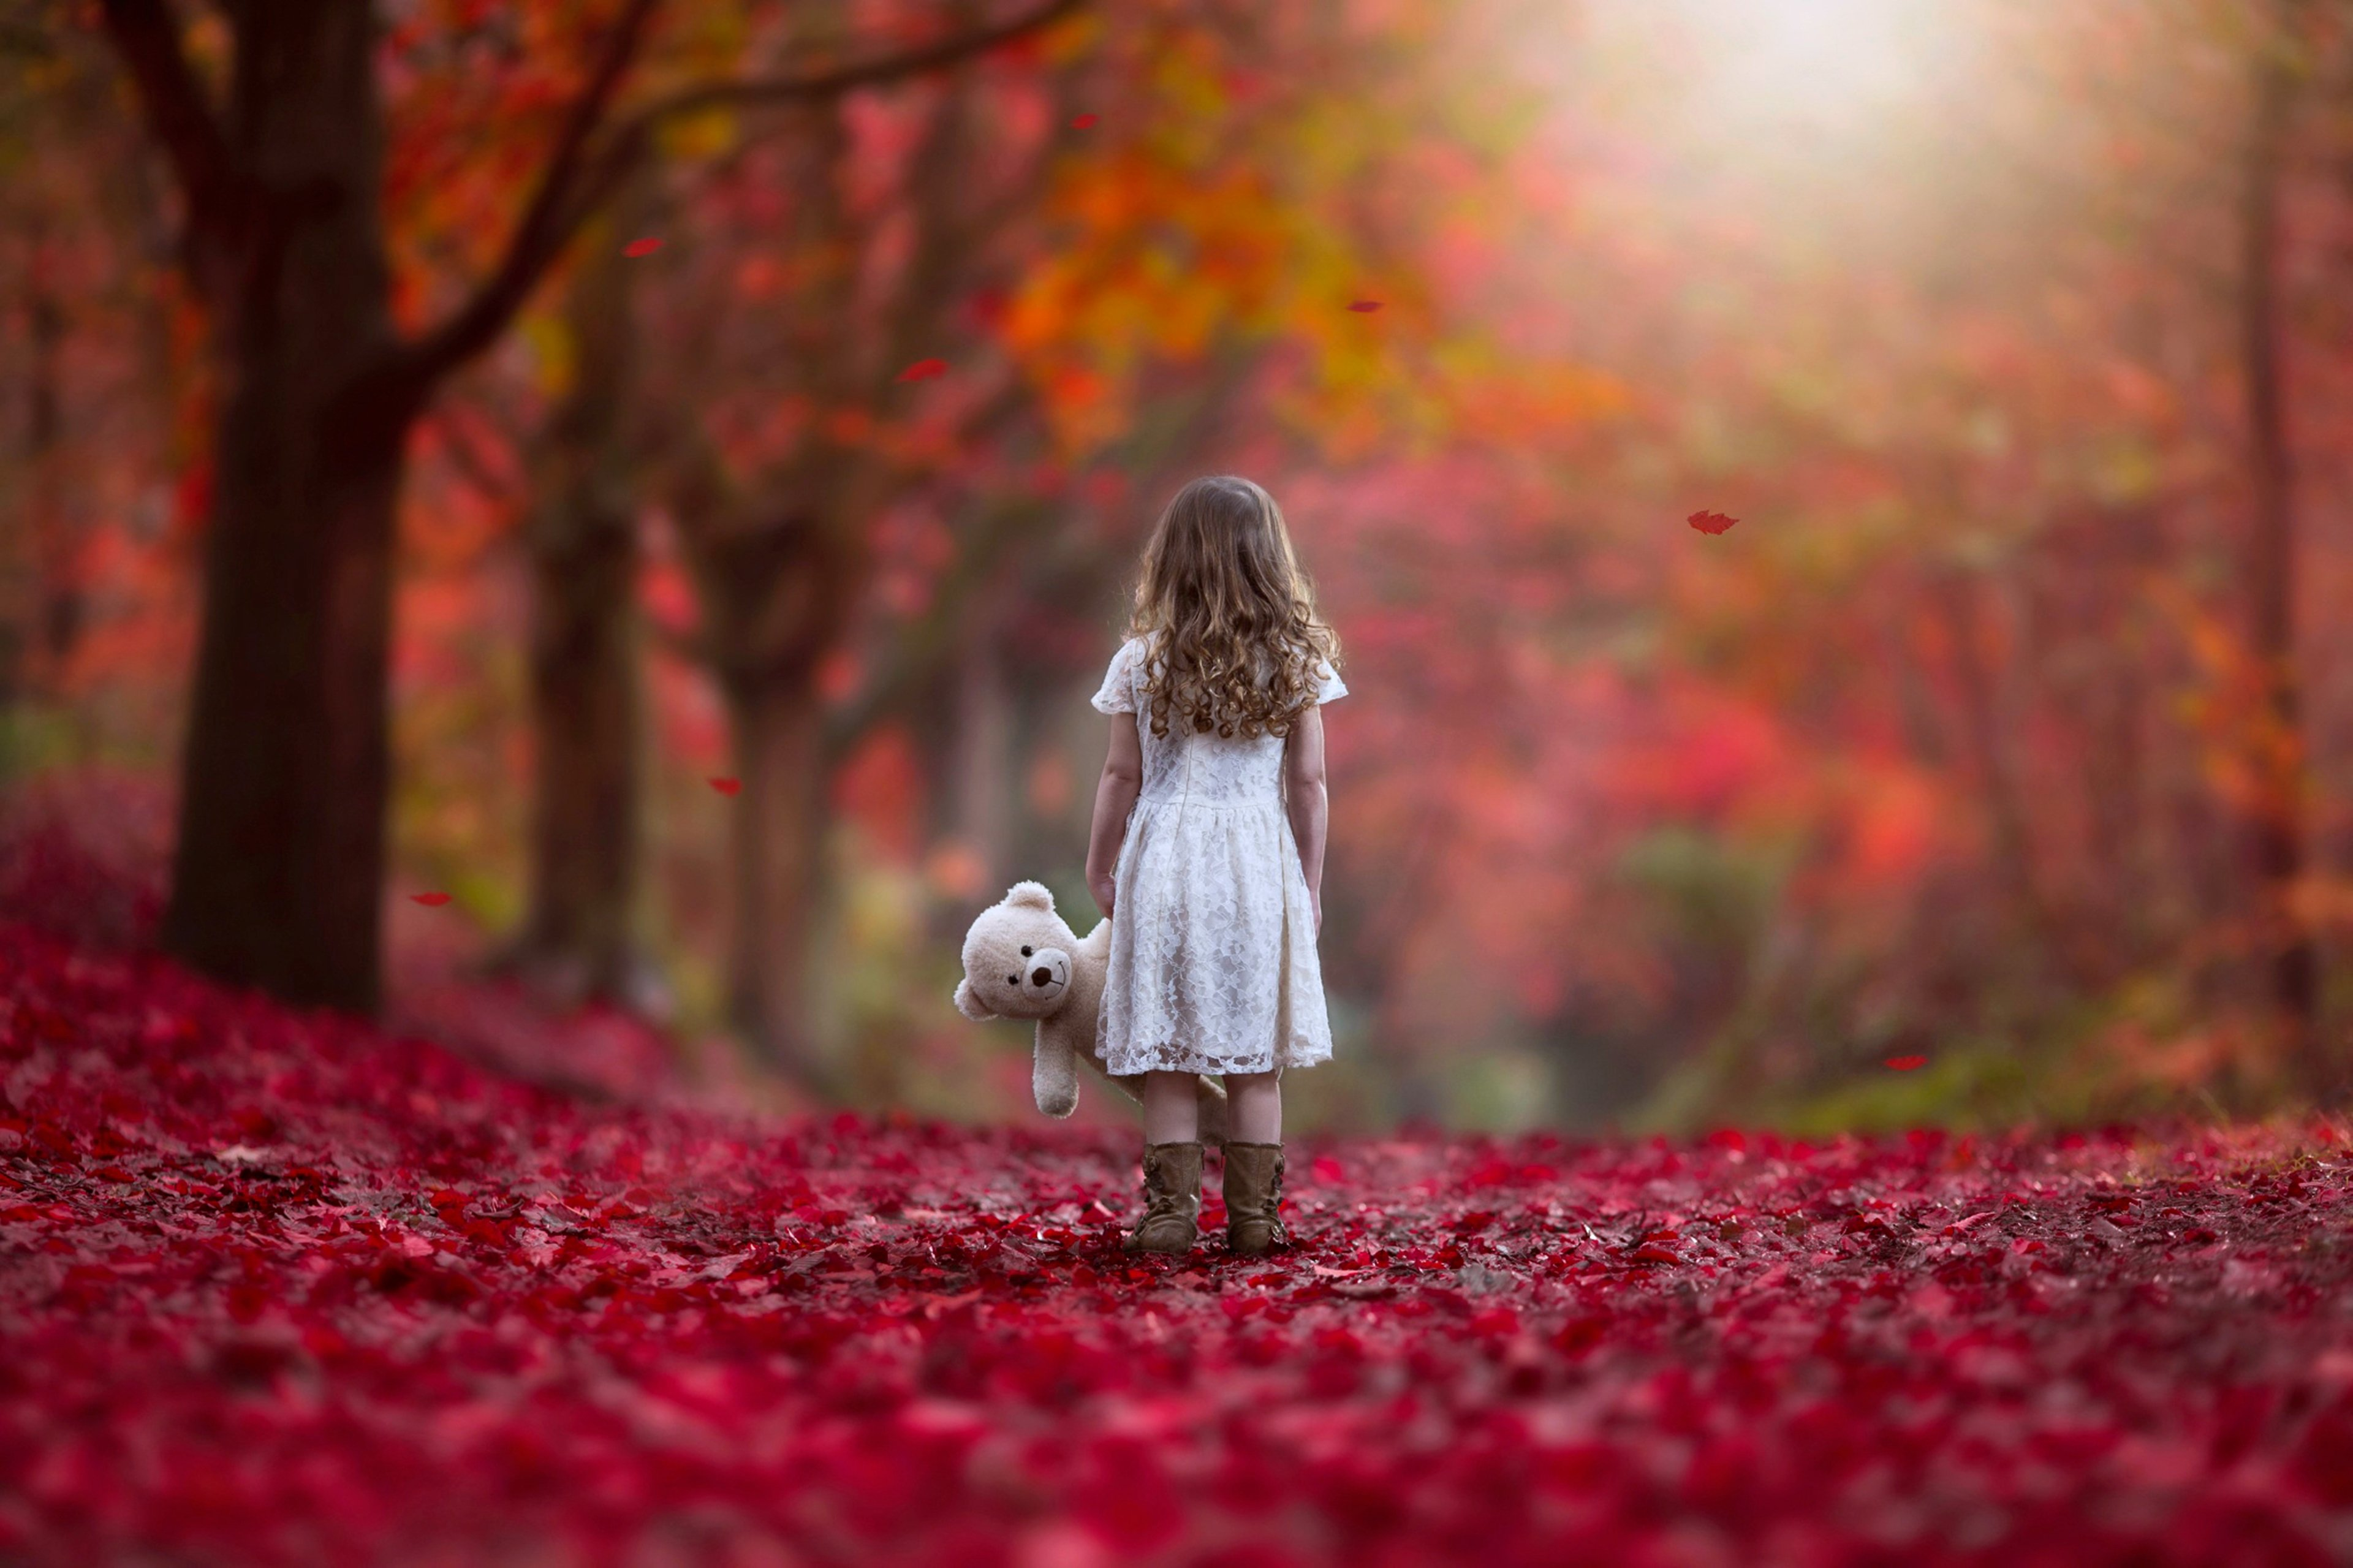 Autumn Littel girl forest sad lonely alone red nature Princess Doll way kids child wallpaper | 3840x2559 | 622518 | WallpaperUP